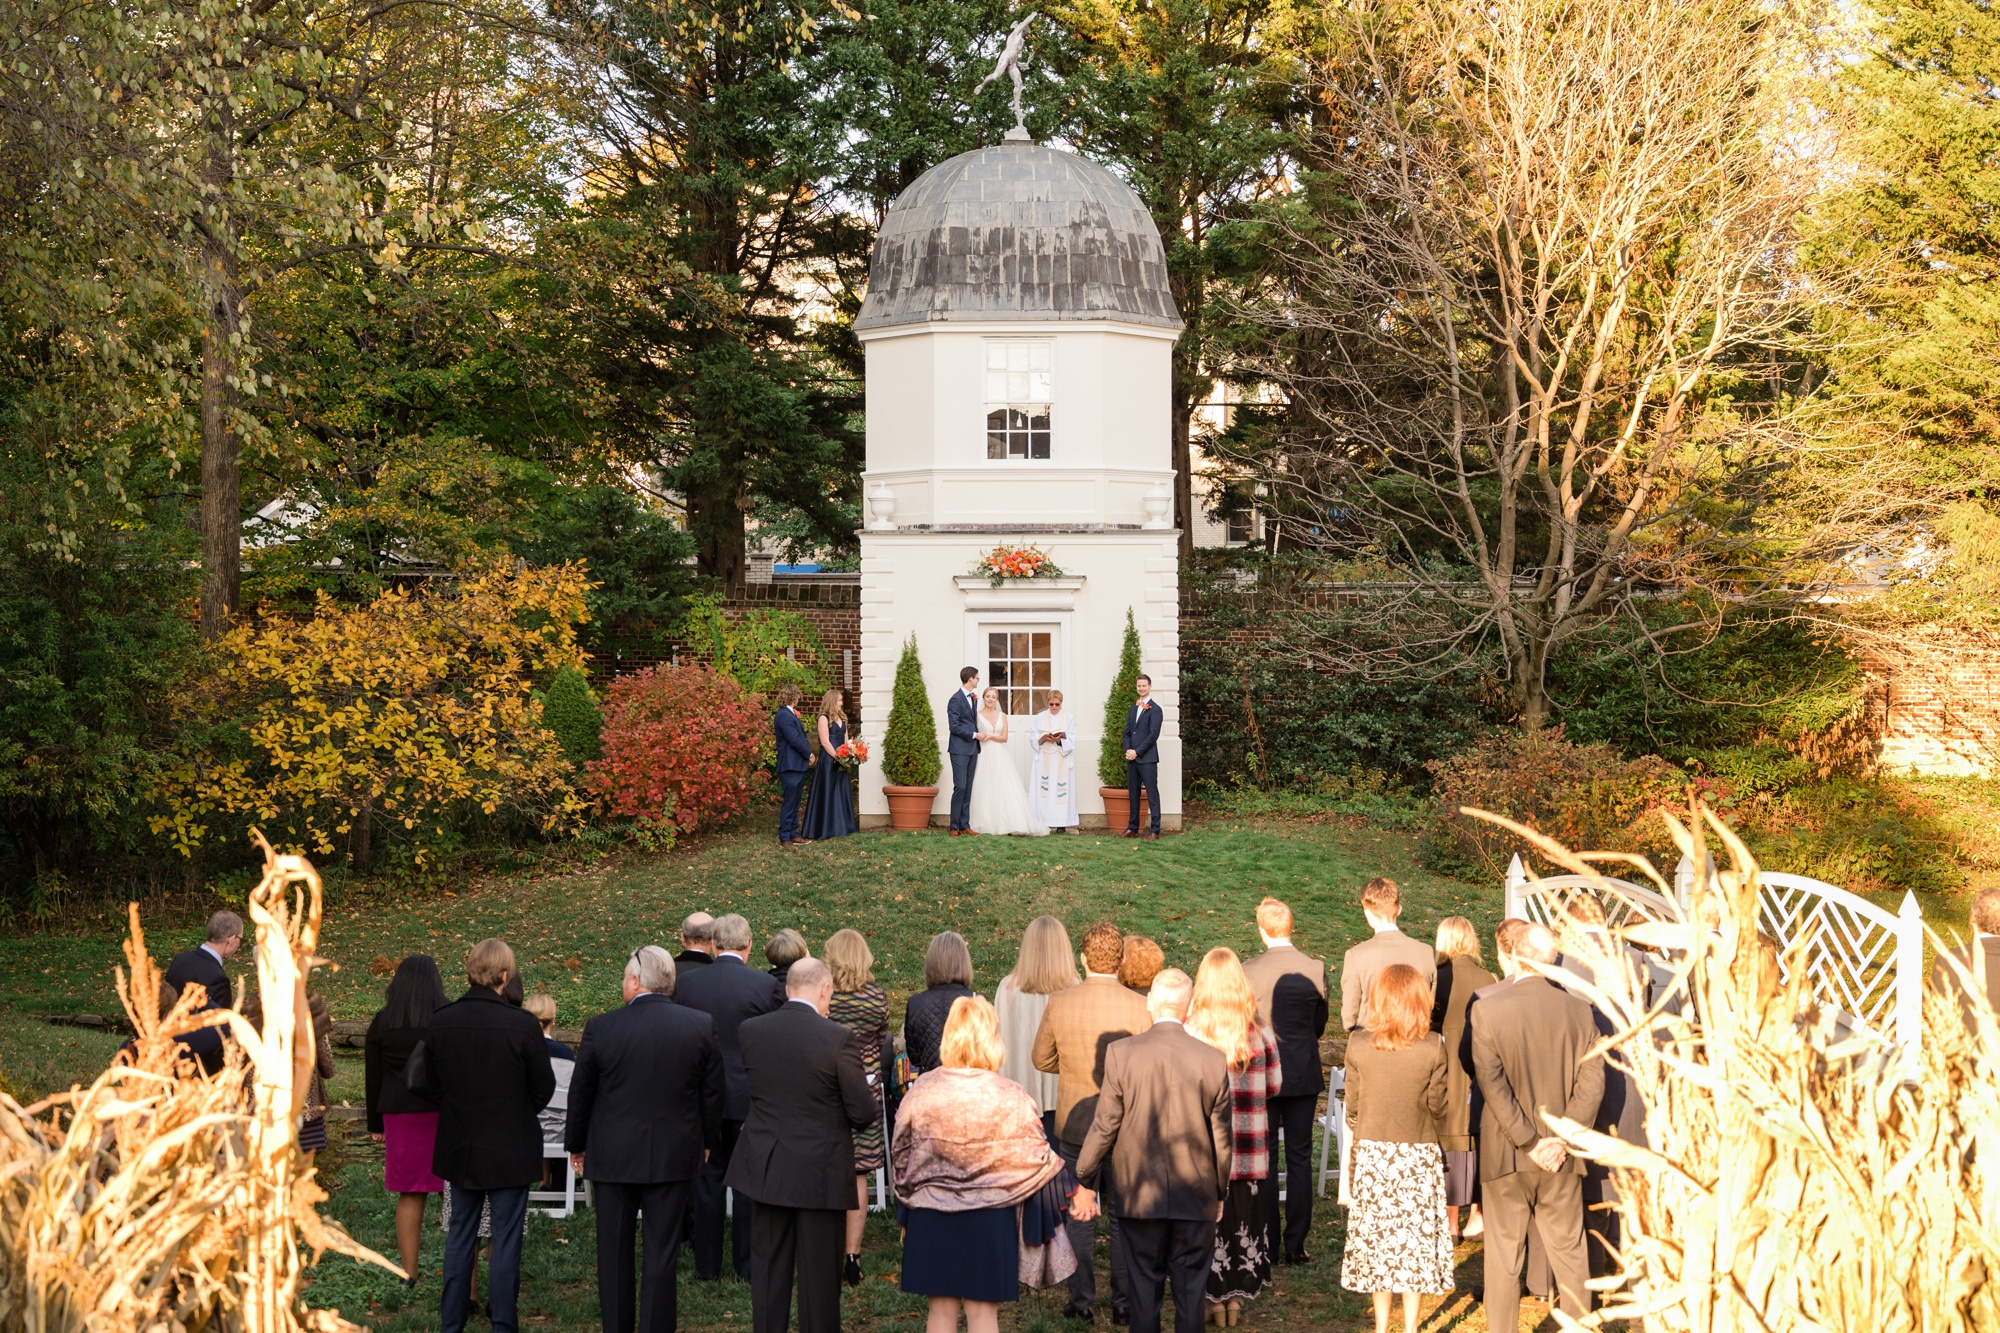 Paca House Garden outdoor ceremony